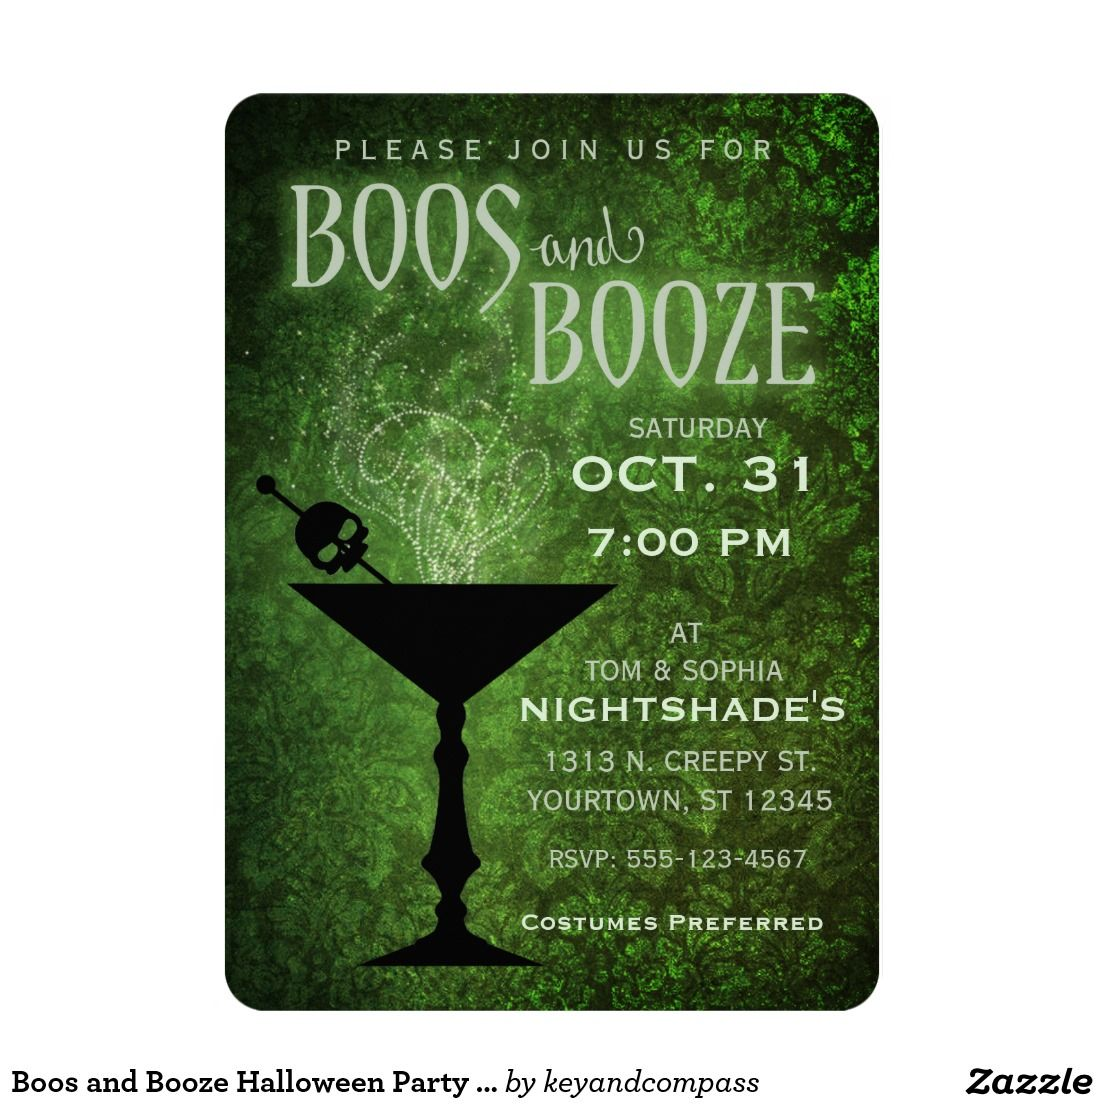 Boos and Booze Halloween Party Invitation   Halloween party ...